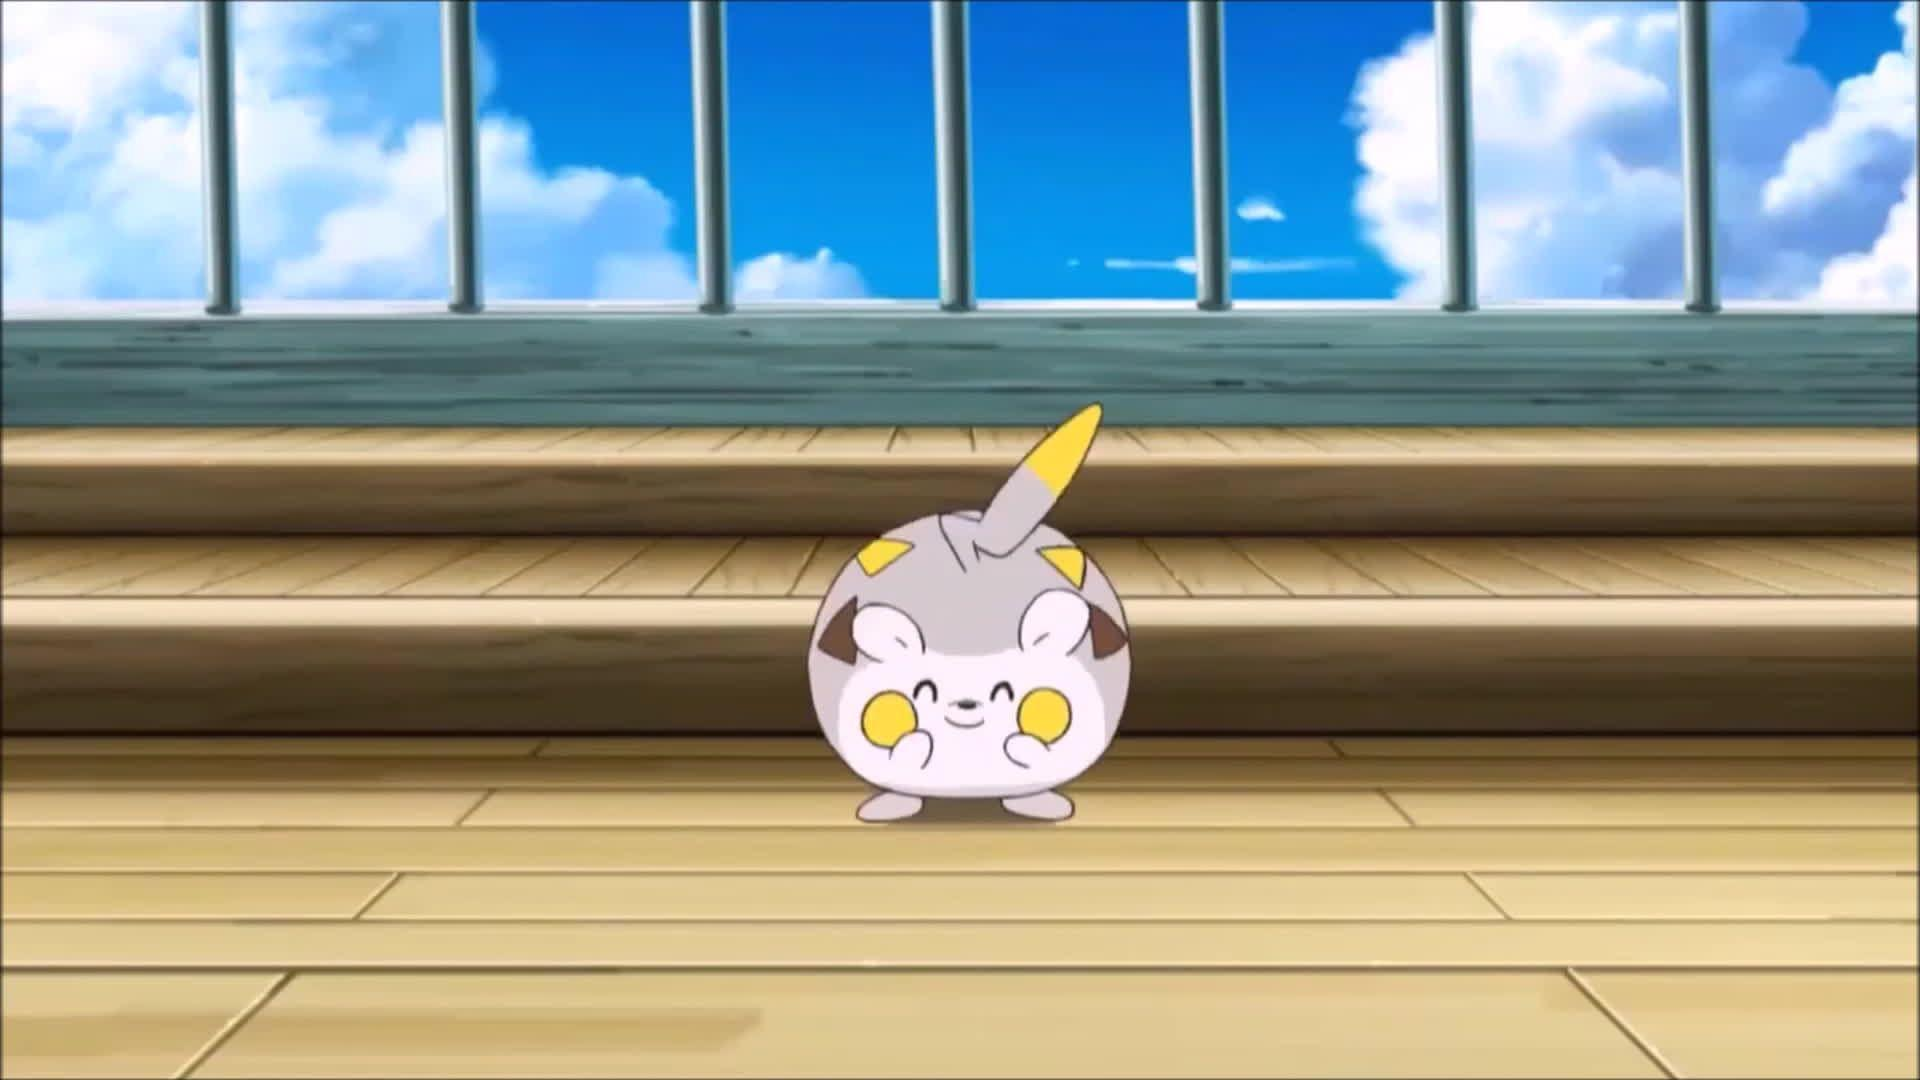 Togedemaru Annoys Pikachu! Pokemon Sun and Moon Anime Episode 8 HD